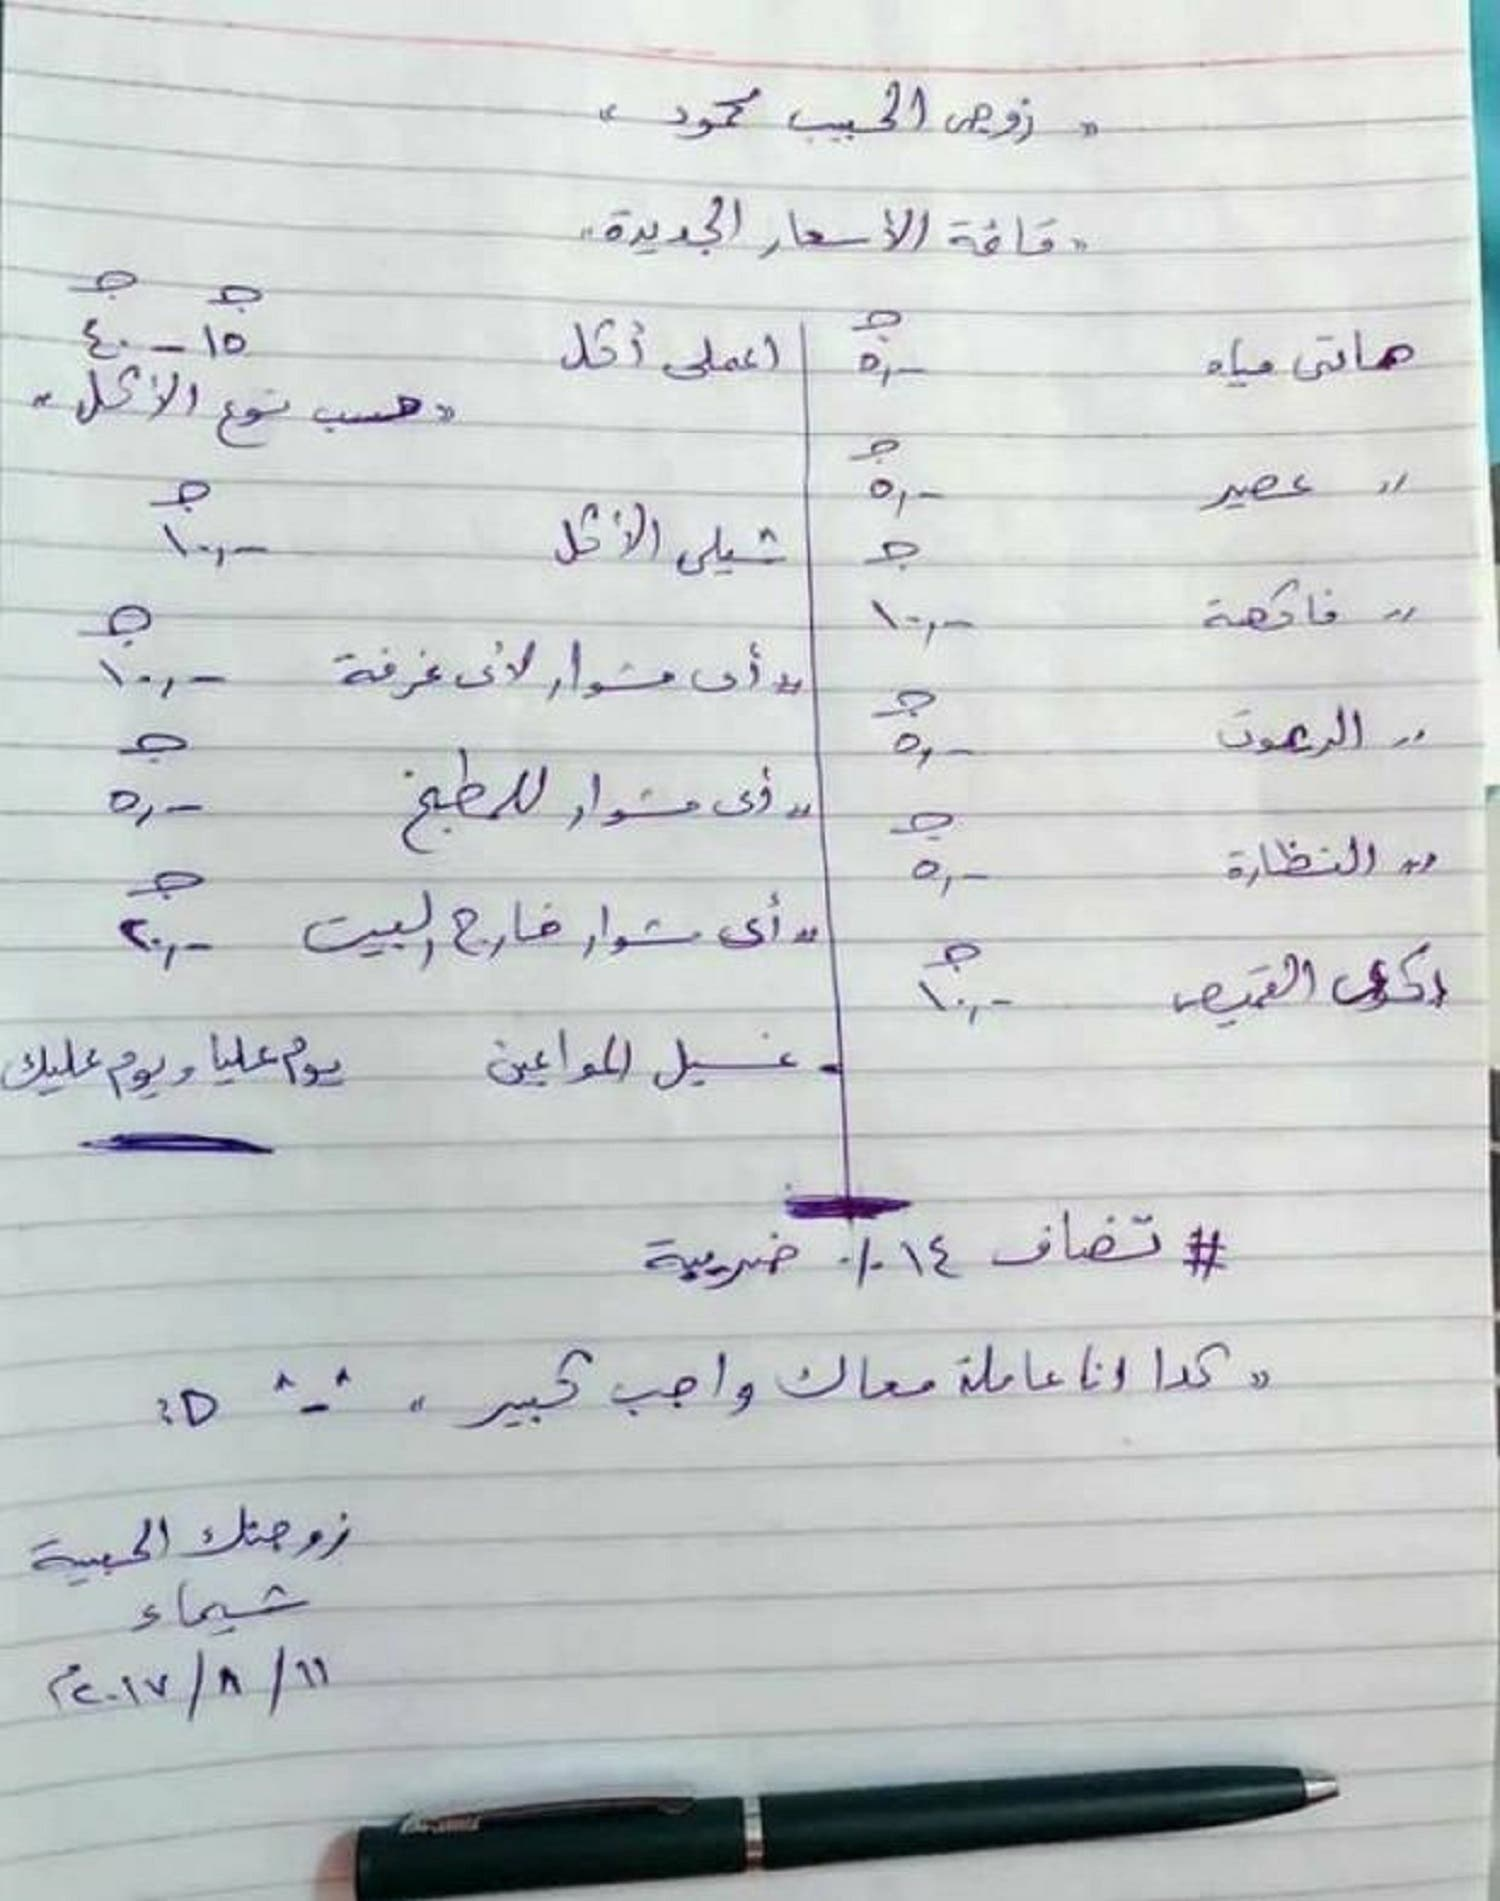 Egyptian wife's price list for household work (Supplied)